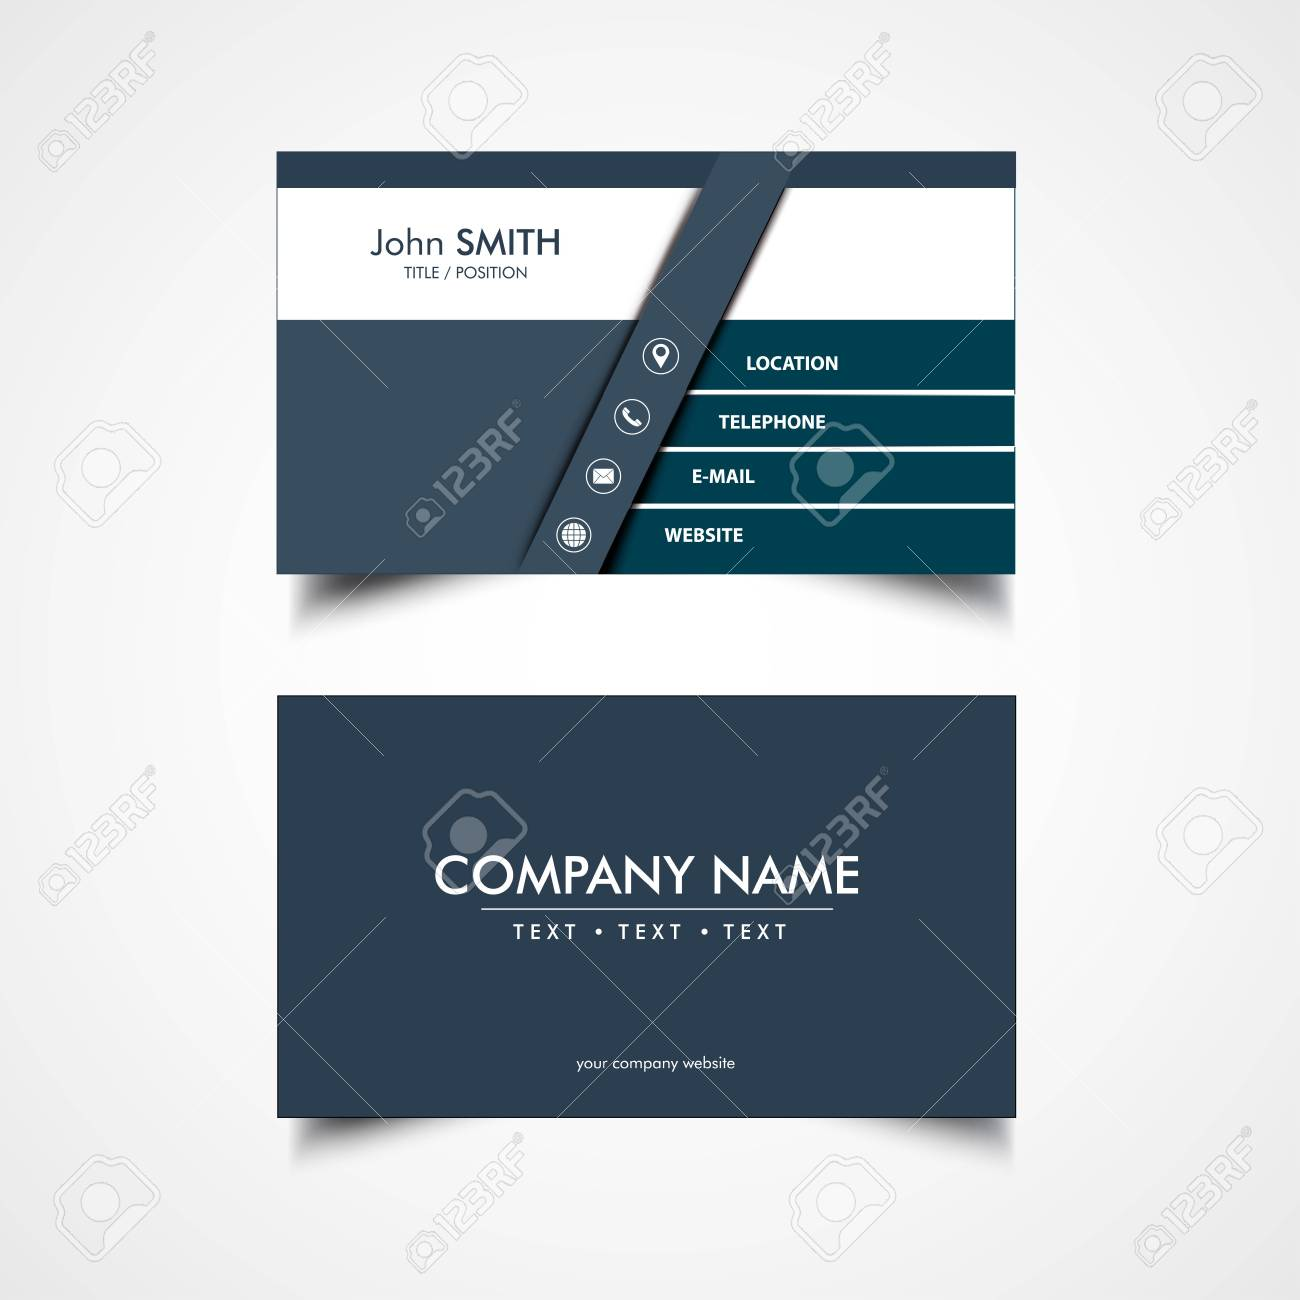 Simple business card template vector illustration eps file simple business card template vector illustration eps file stock vector 83413610 reheart Gallery